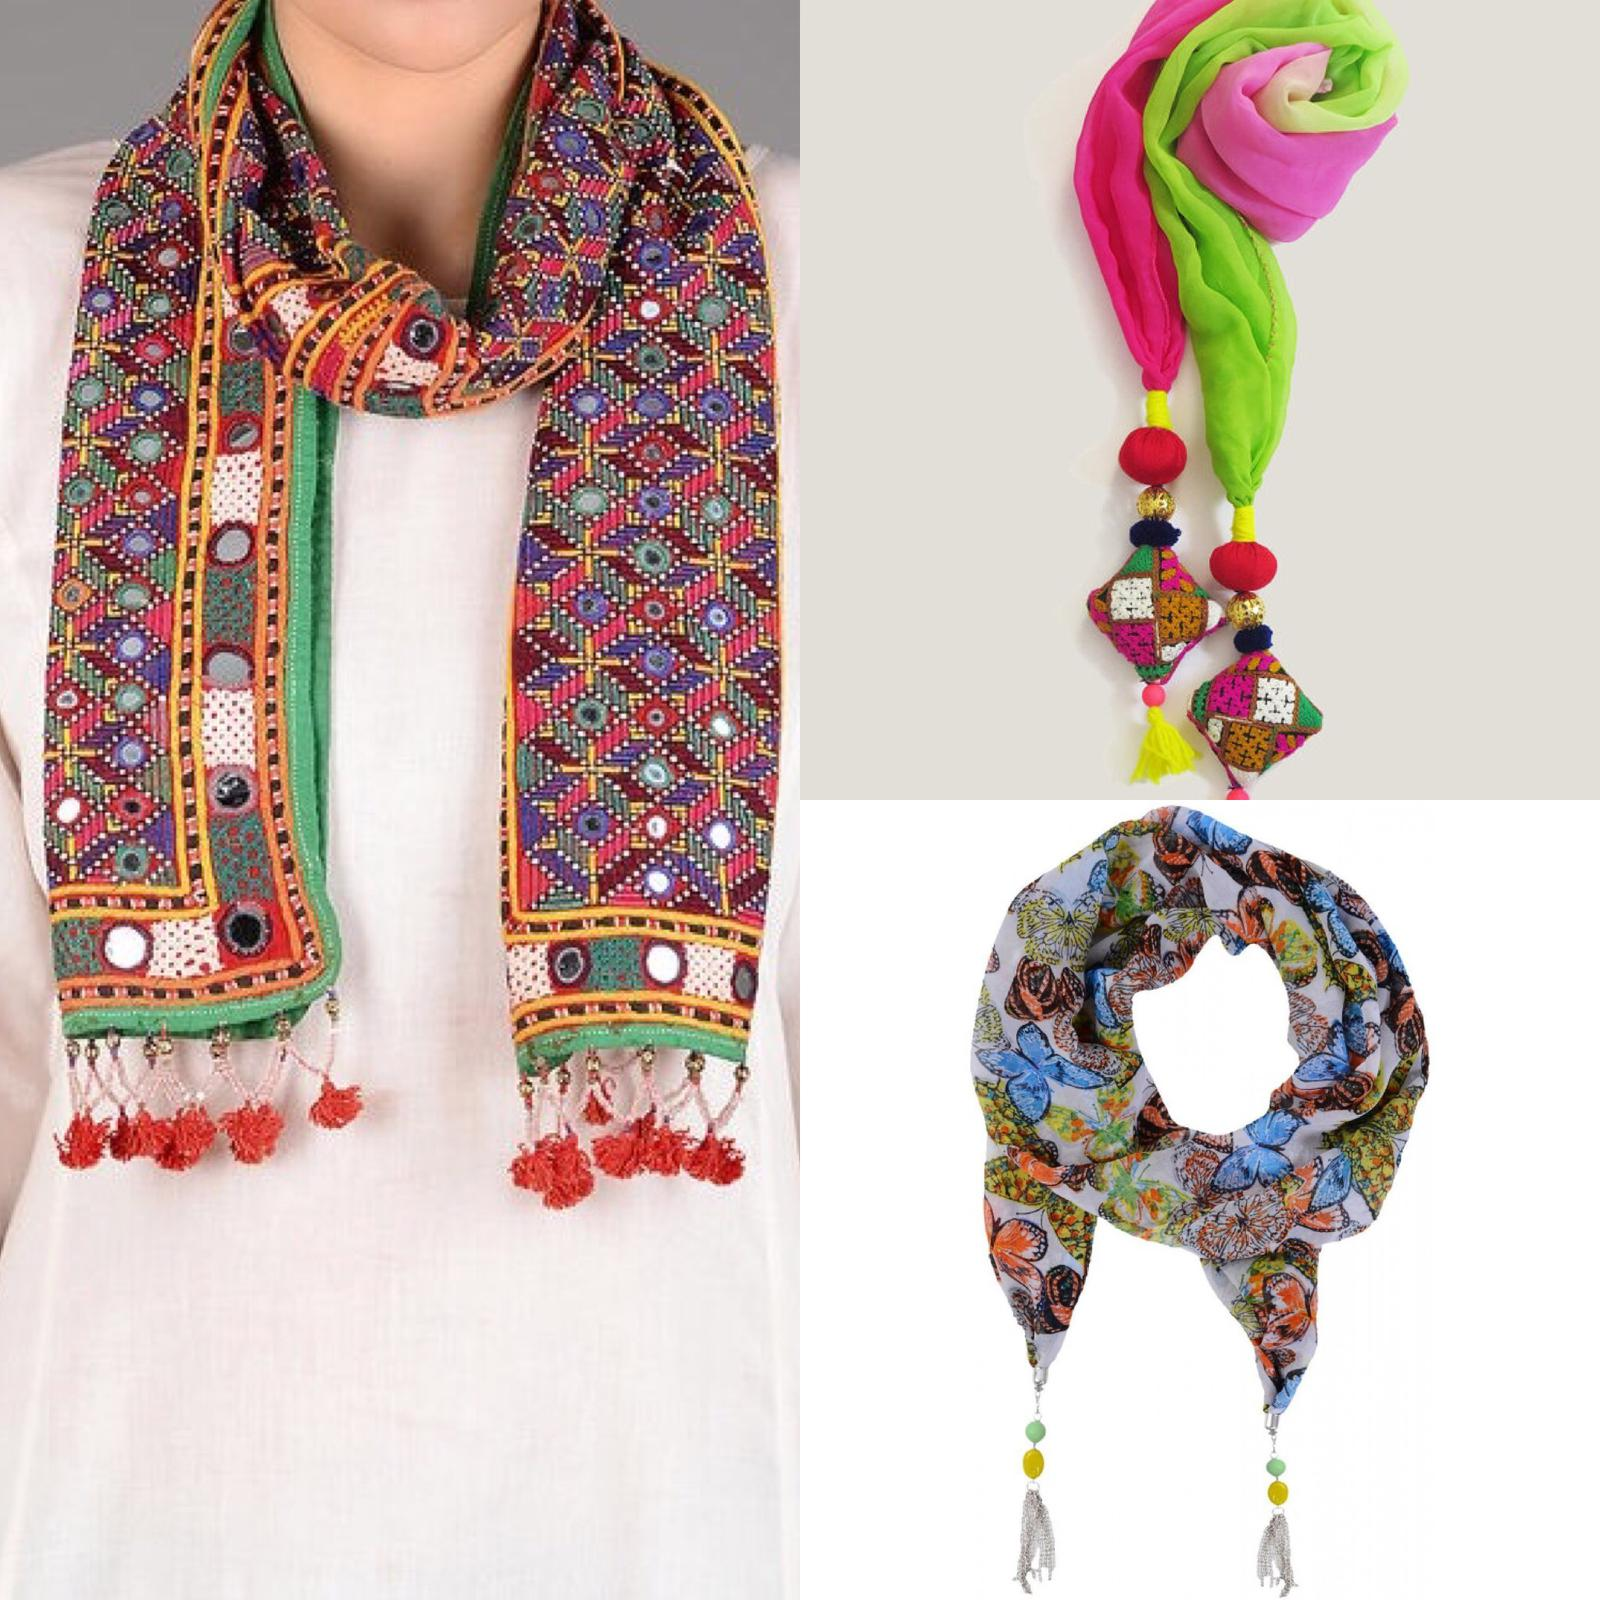 All season Handcrafted scarves - embroidery and tassel work